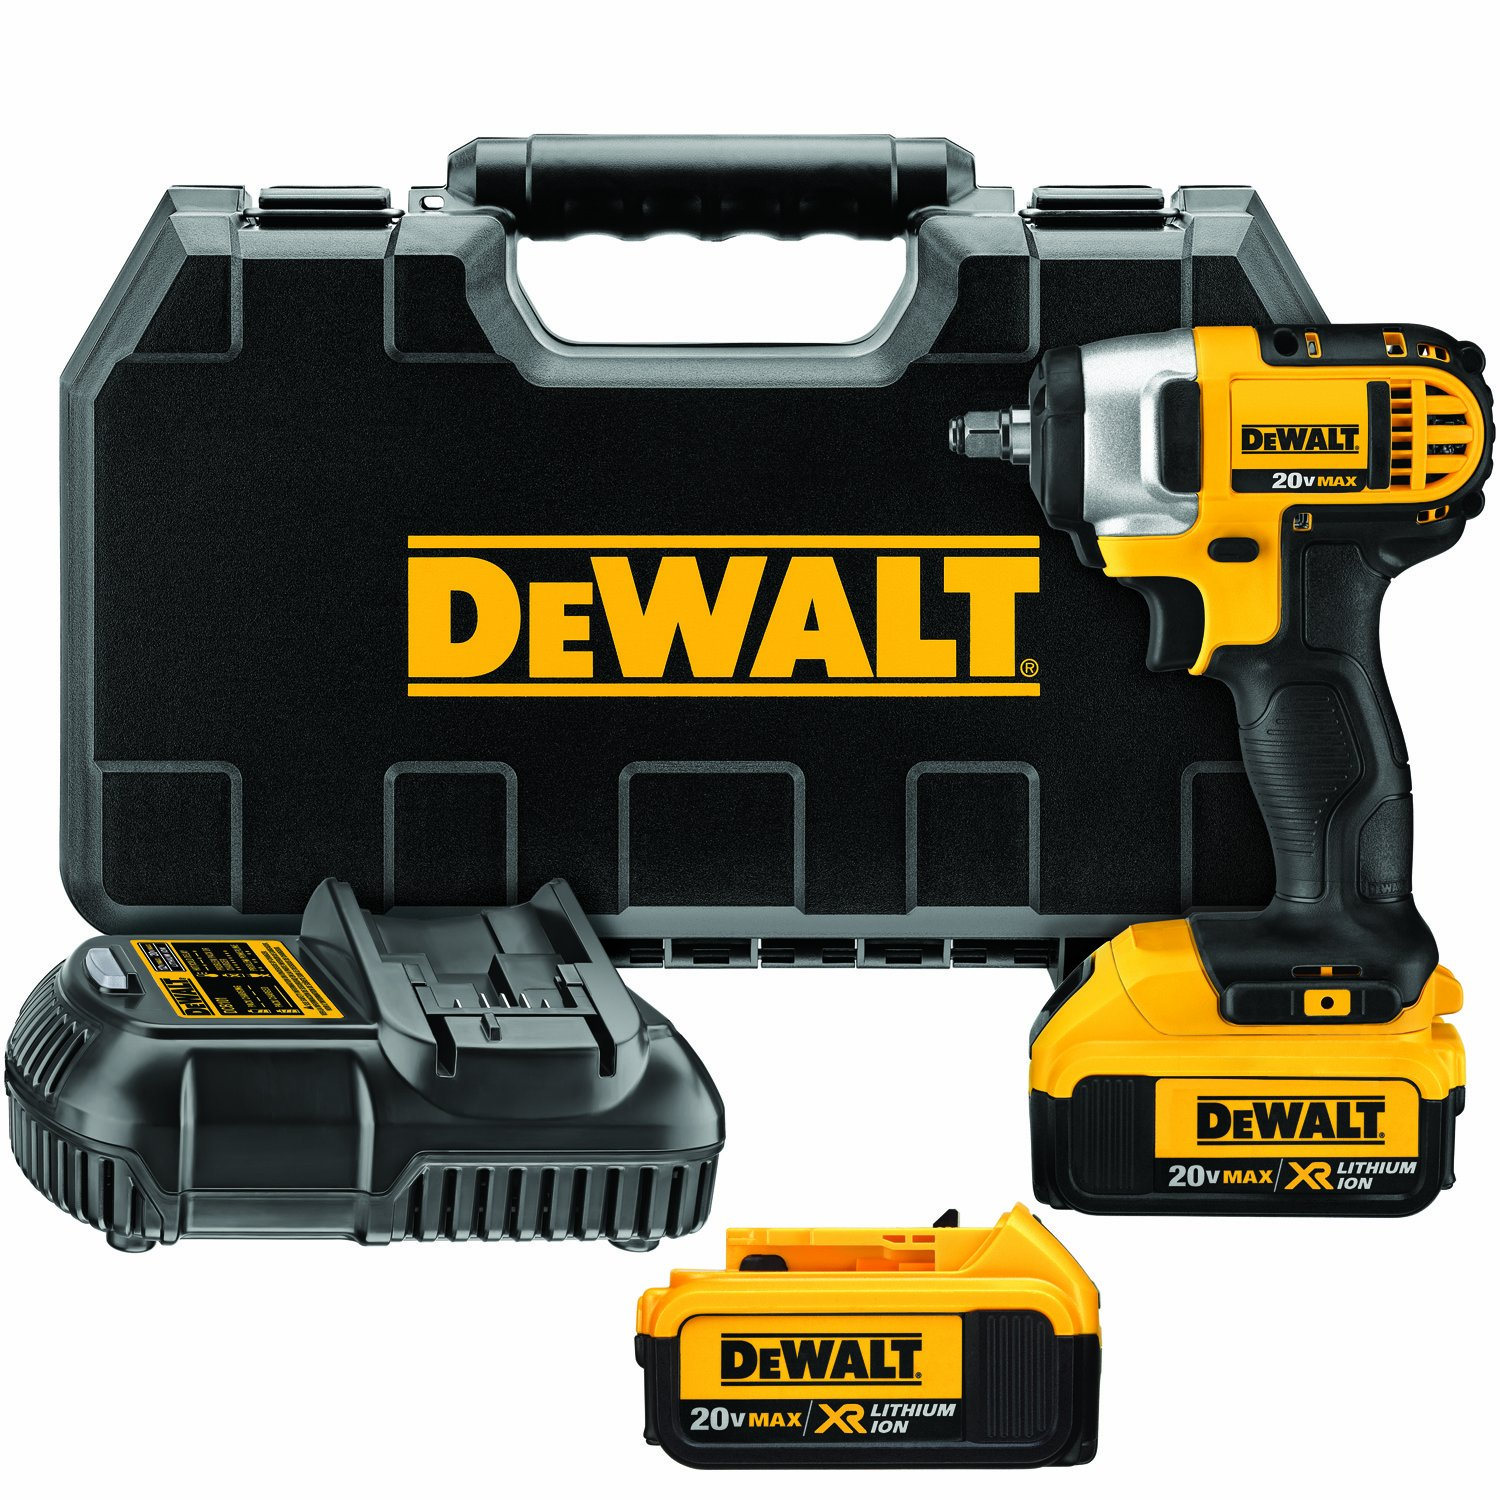 DEWALT DCF883M2 20-volt MAX Lithium Ion 3/8-Inch Impact Wrench Kit with Hog Ring by DEWALT